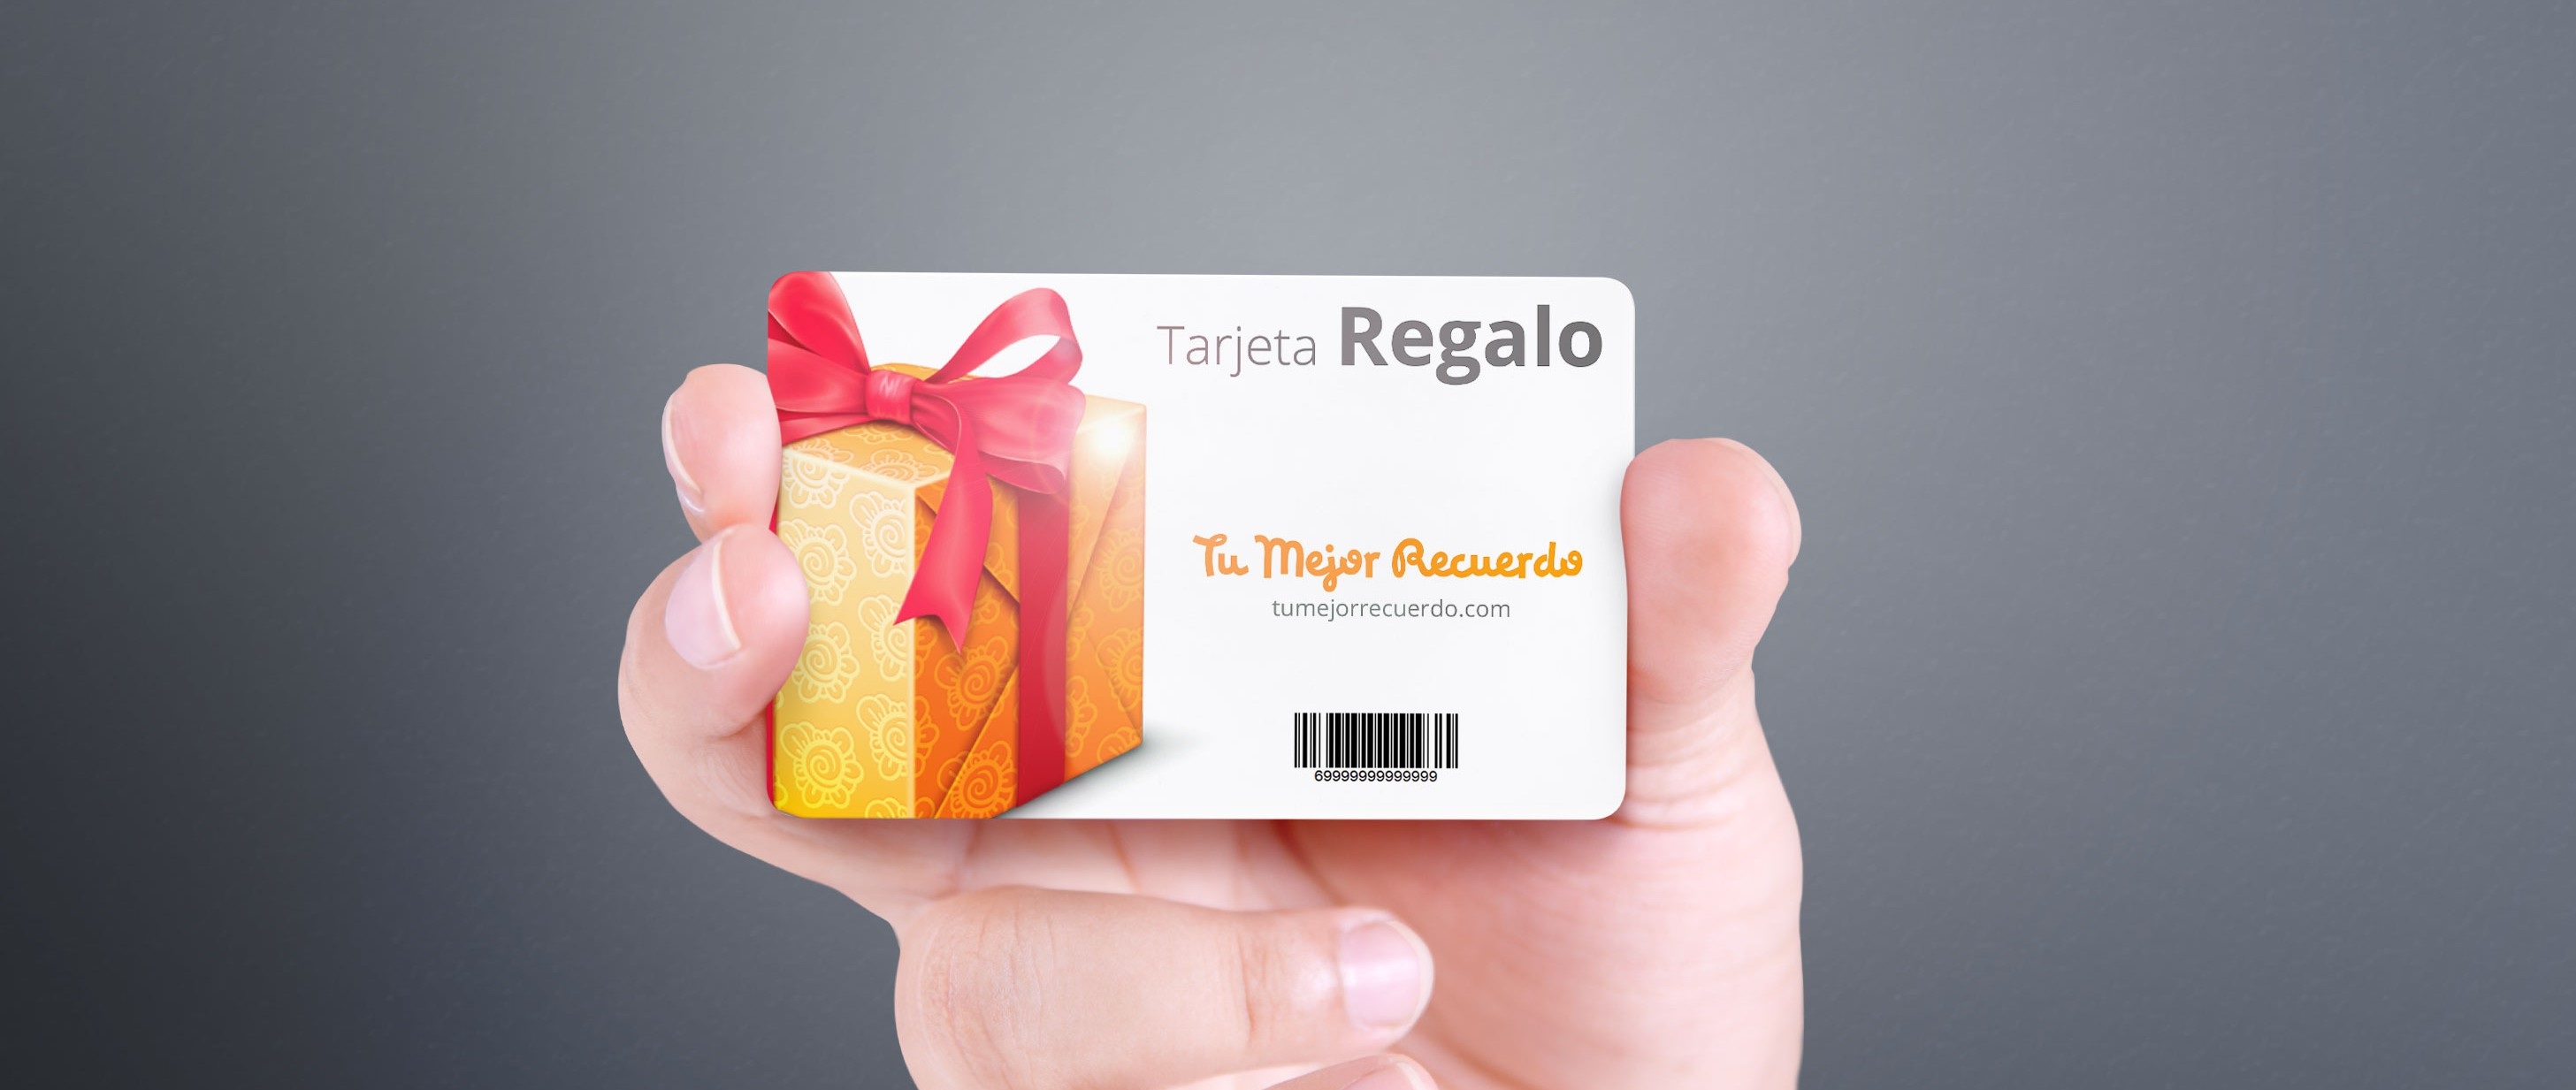 The main image for the gift card